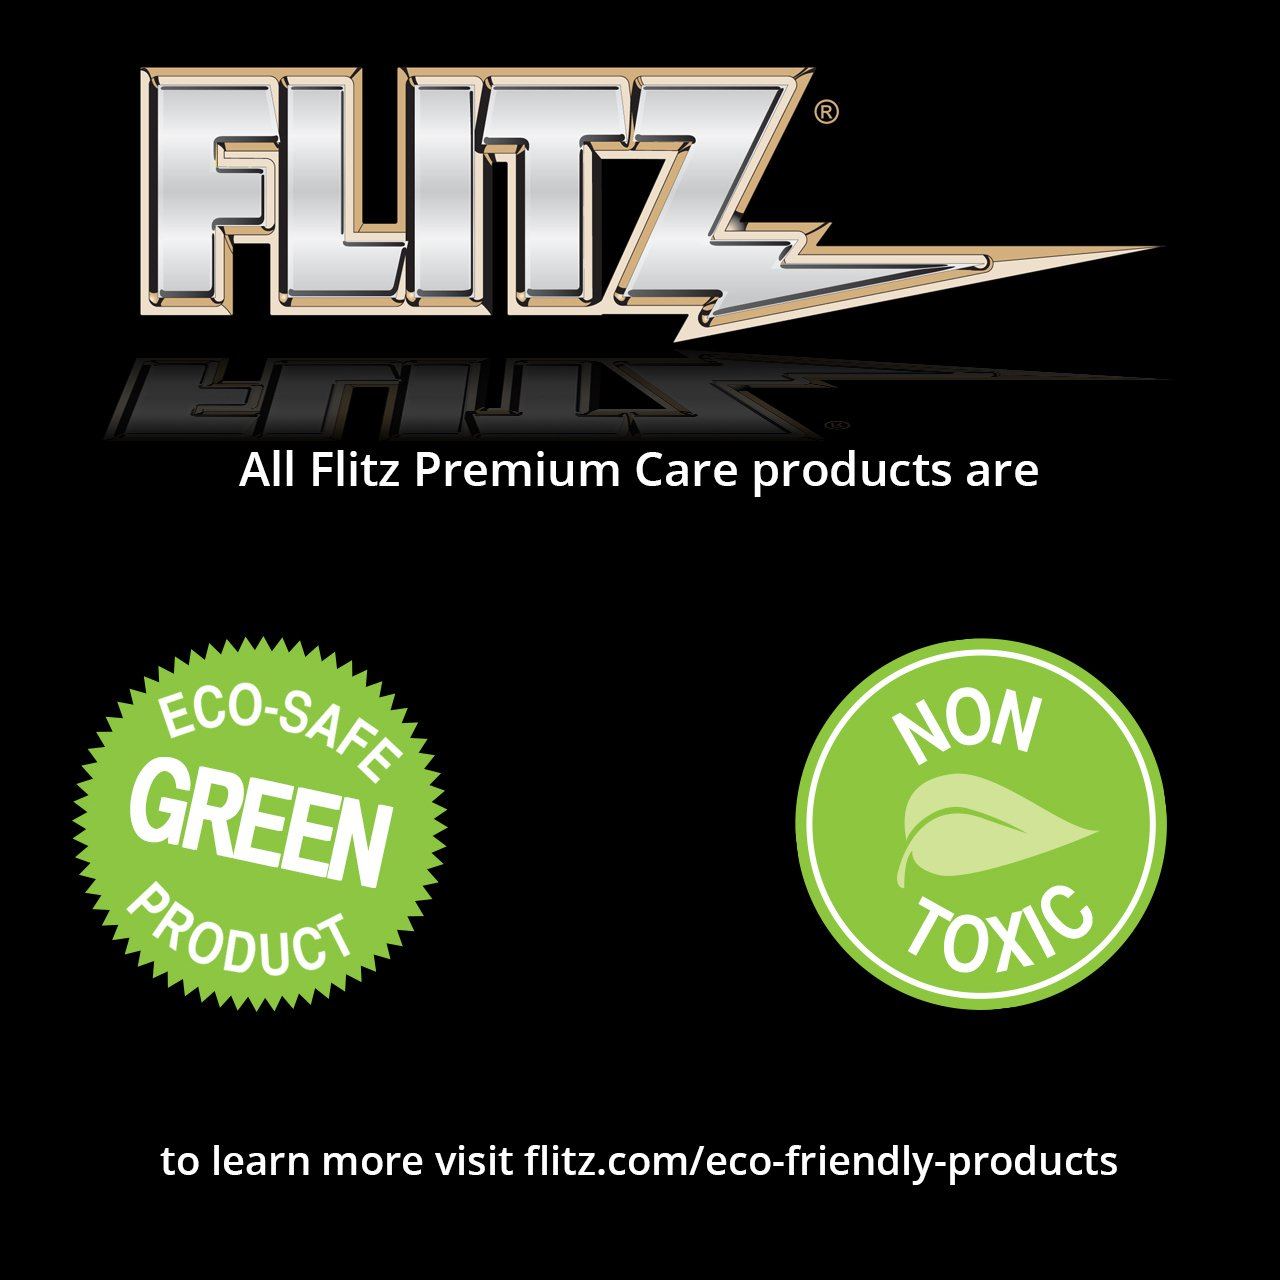 Flitz CR 01610 Instant Calcium, Lime and Rust Remover, 1 Gallon Refill Bottle by Flitz (Image #3)